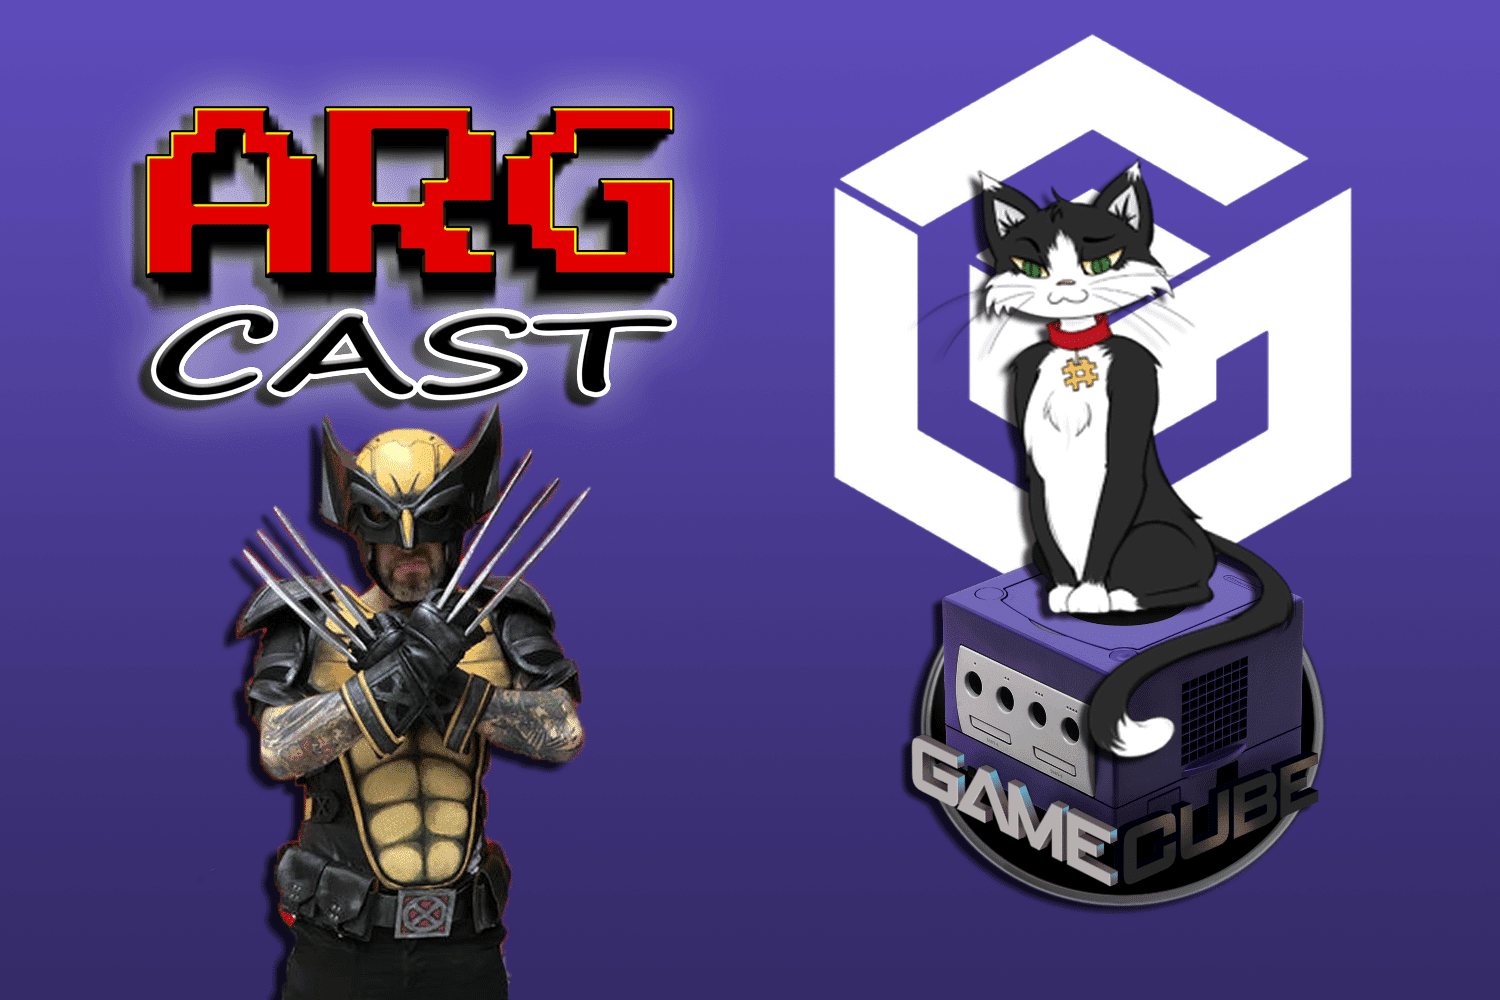 ARGcast #33: Spittin' GameCube with The Hashtagonist and WolverSteve